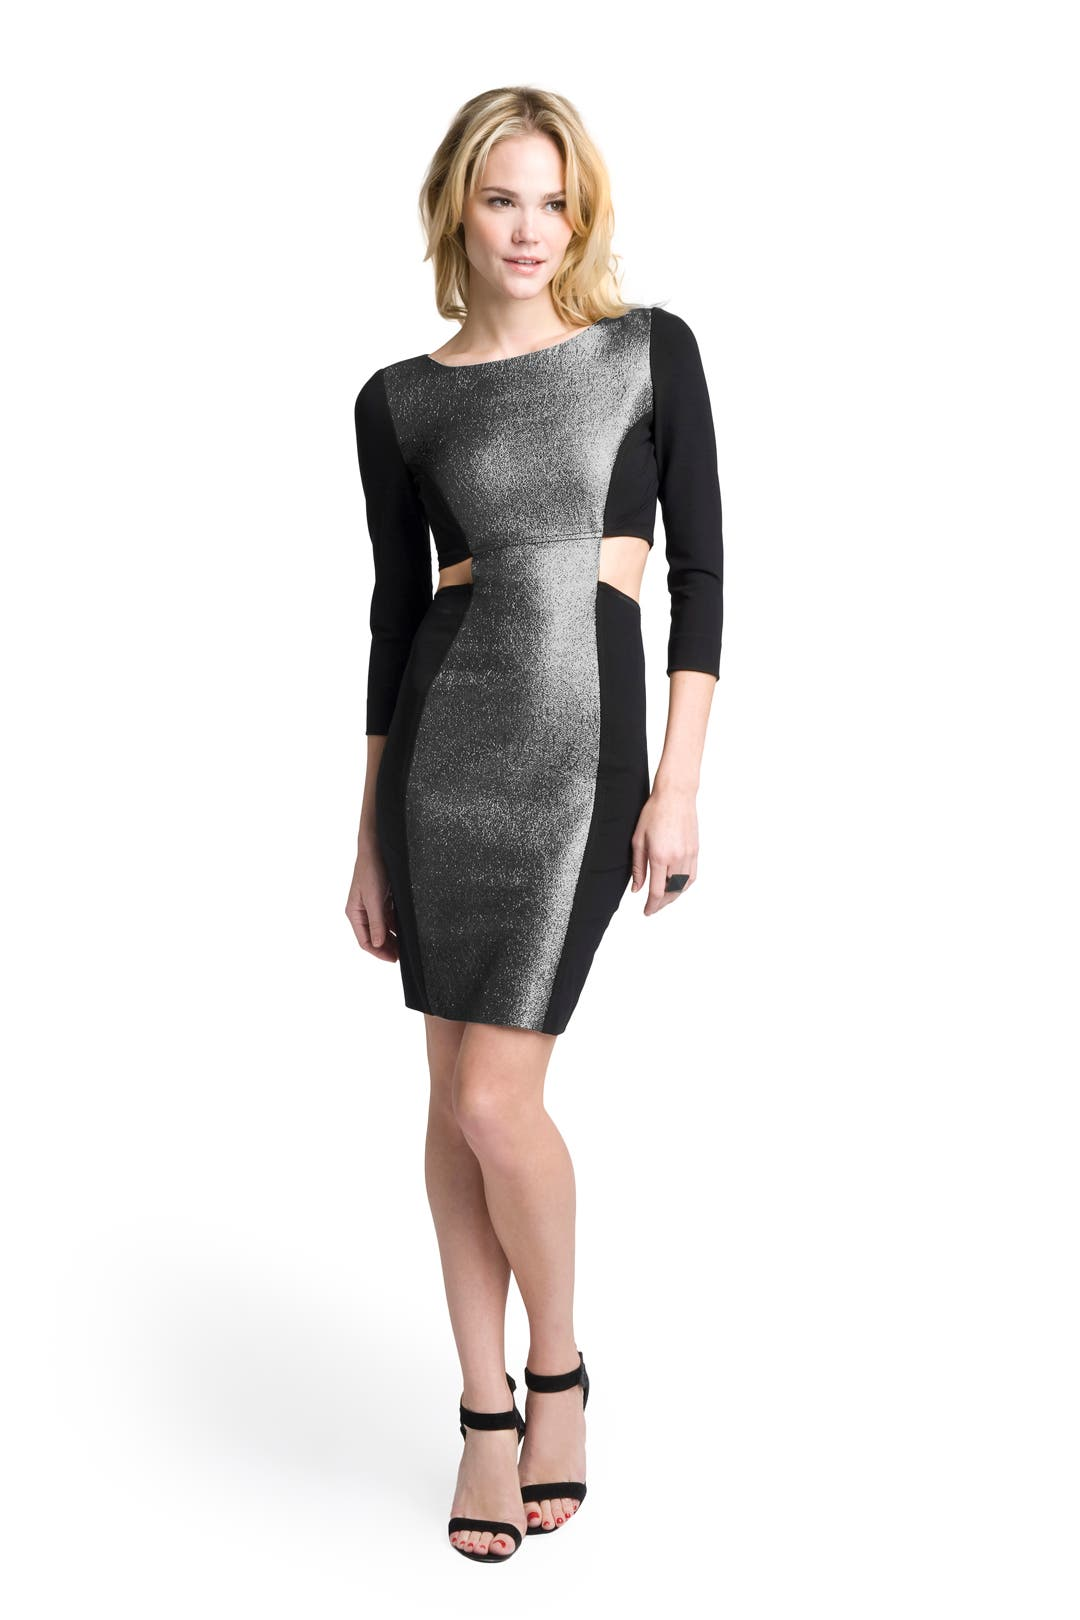 Silver Cut-Out BodyCon Dress by Frank Tell